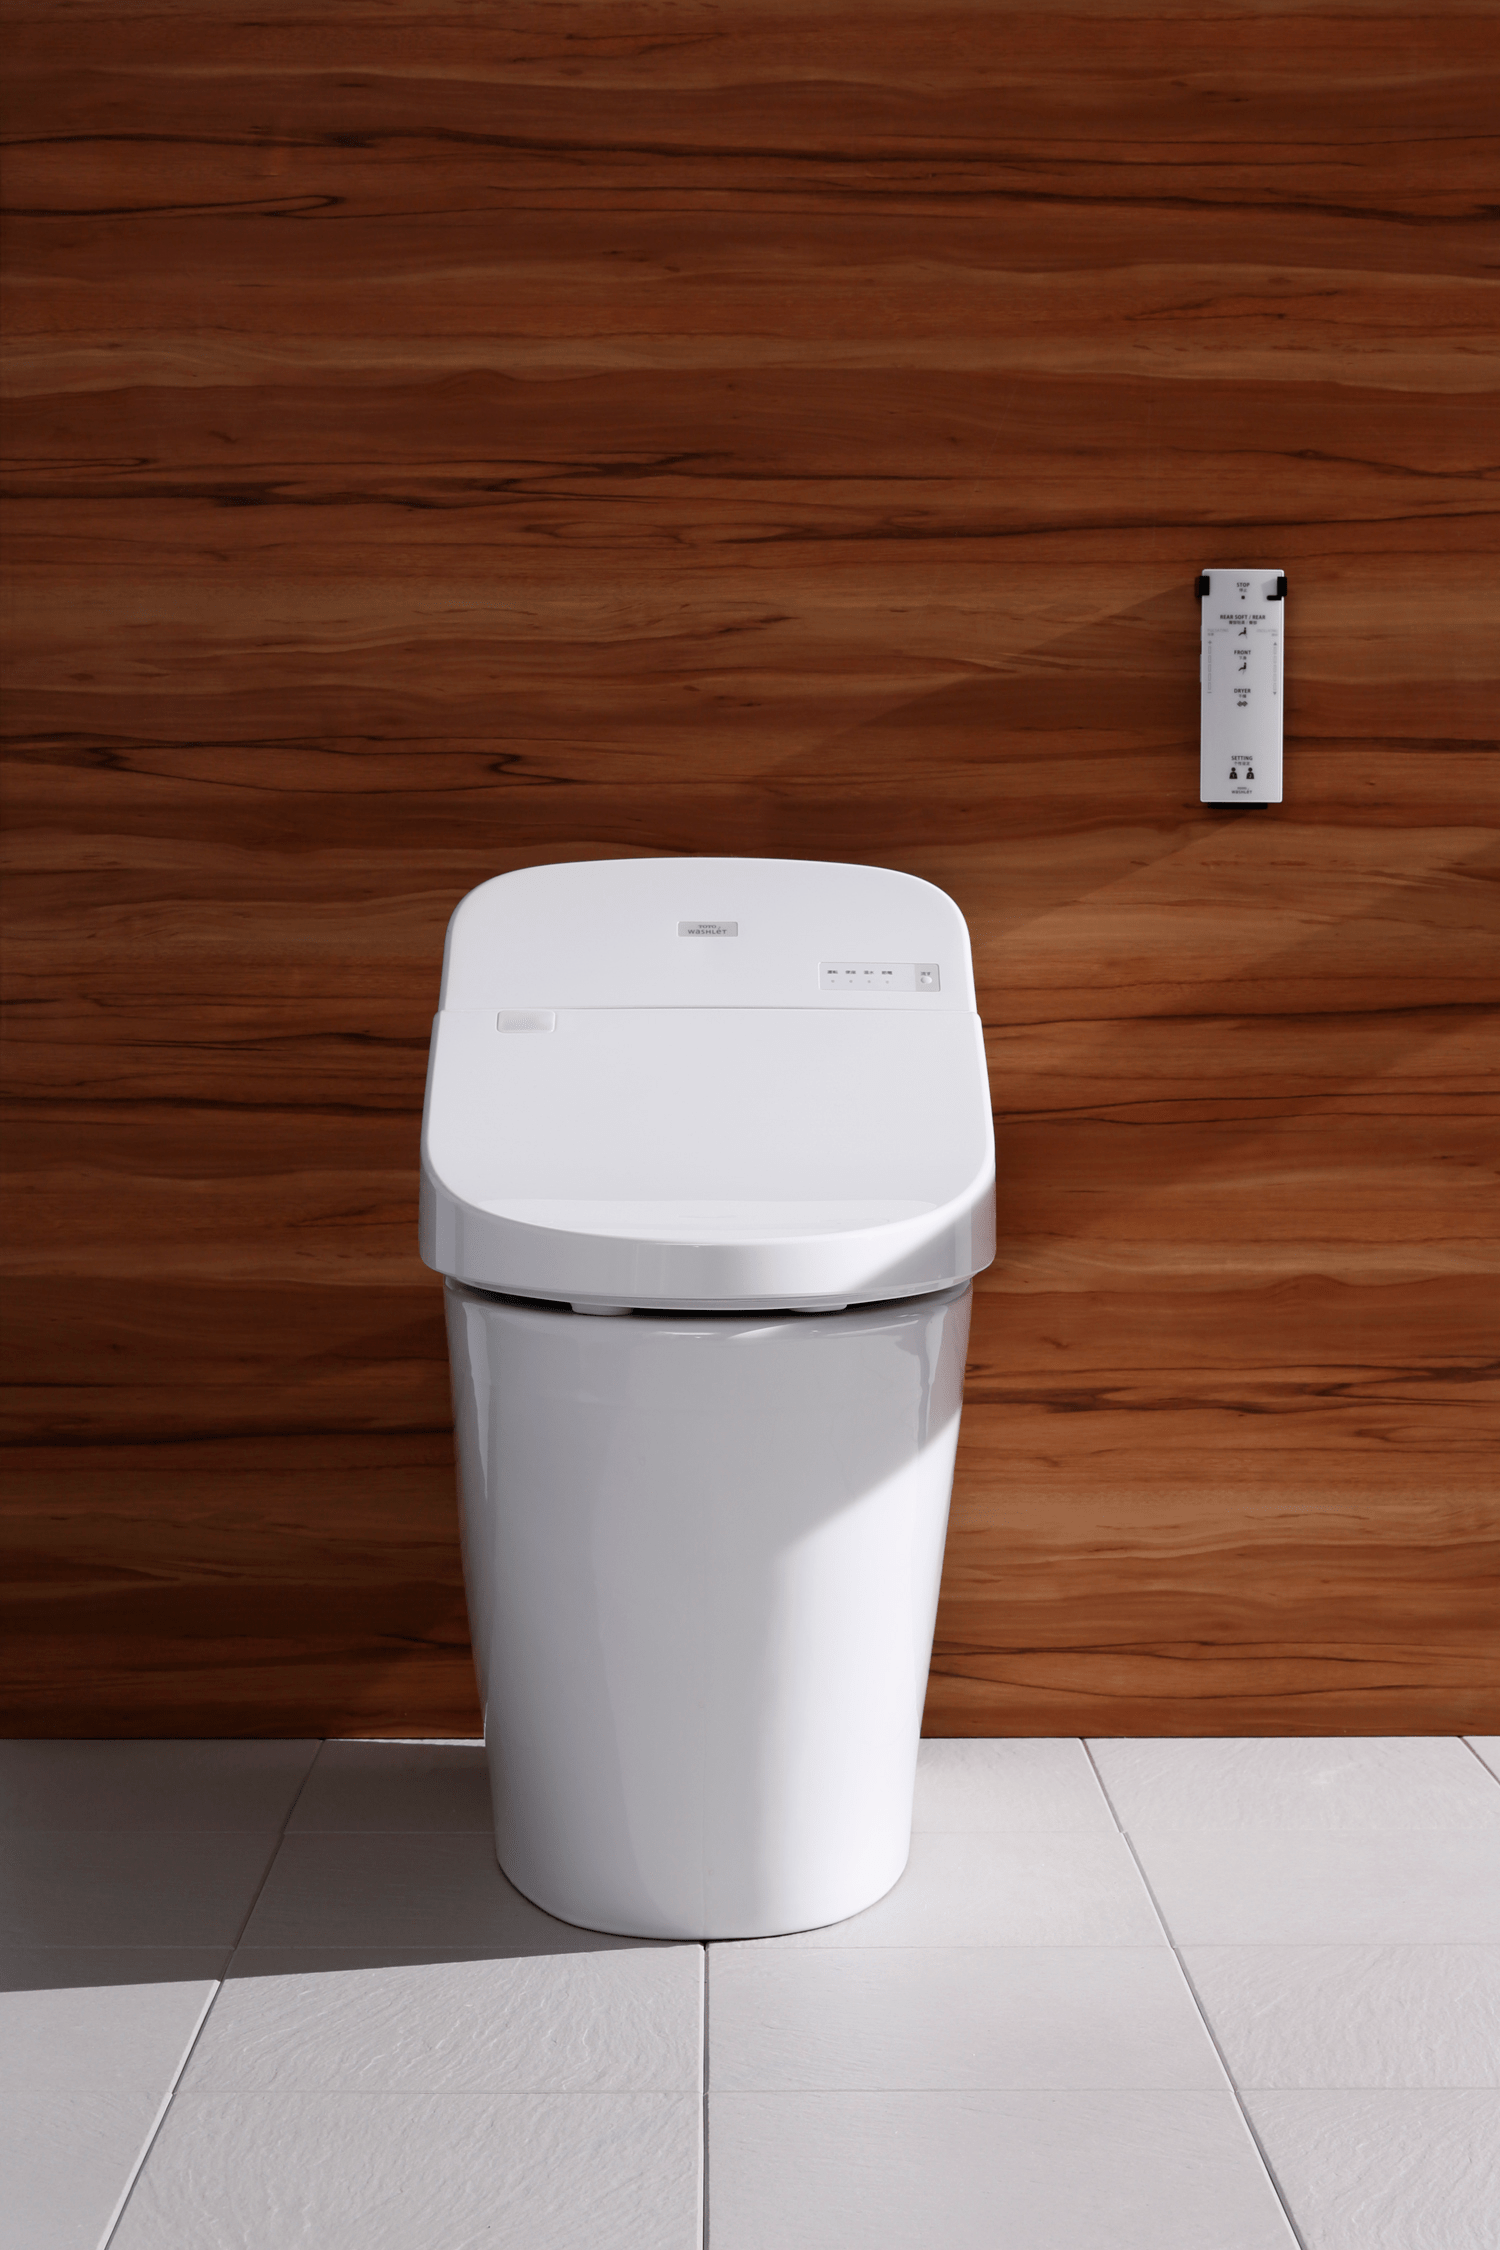 Sensoroperated washlet toilet with remote control  For